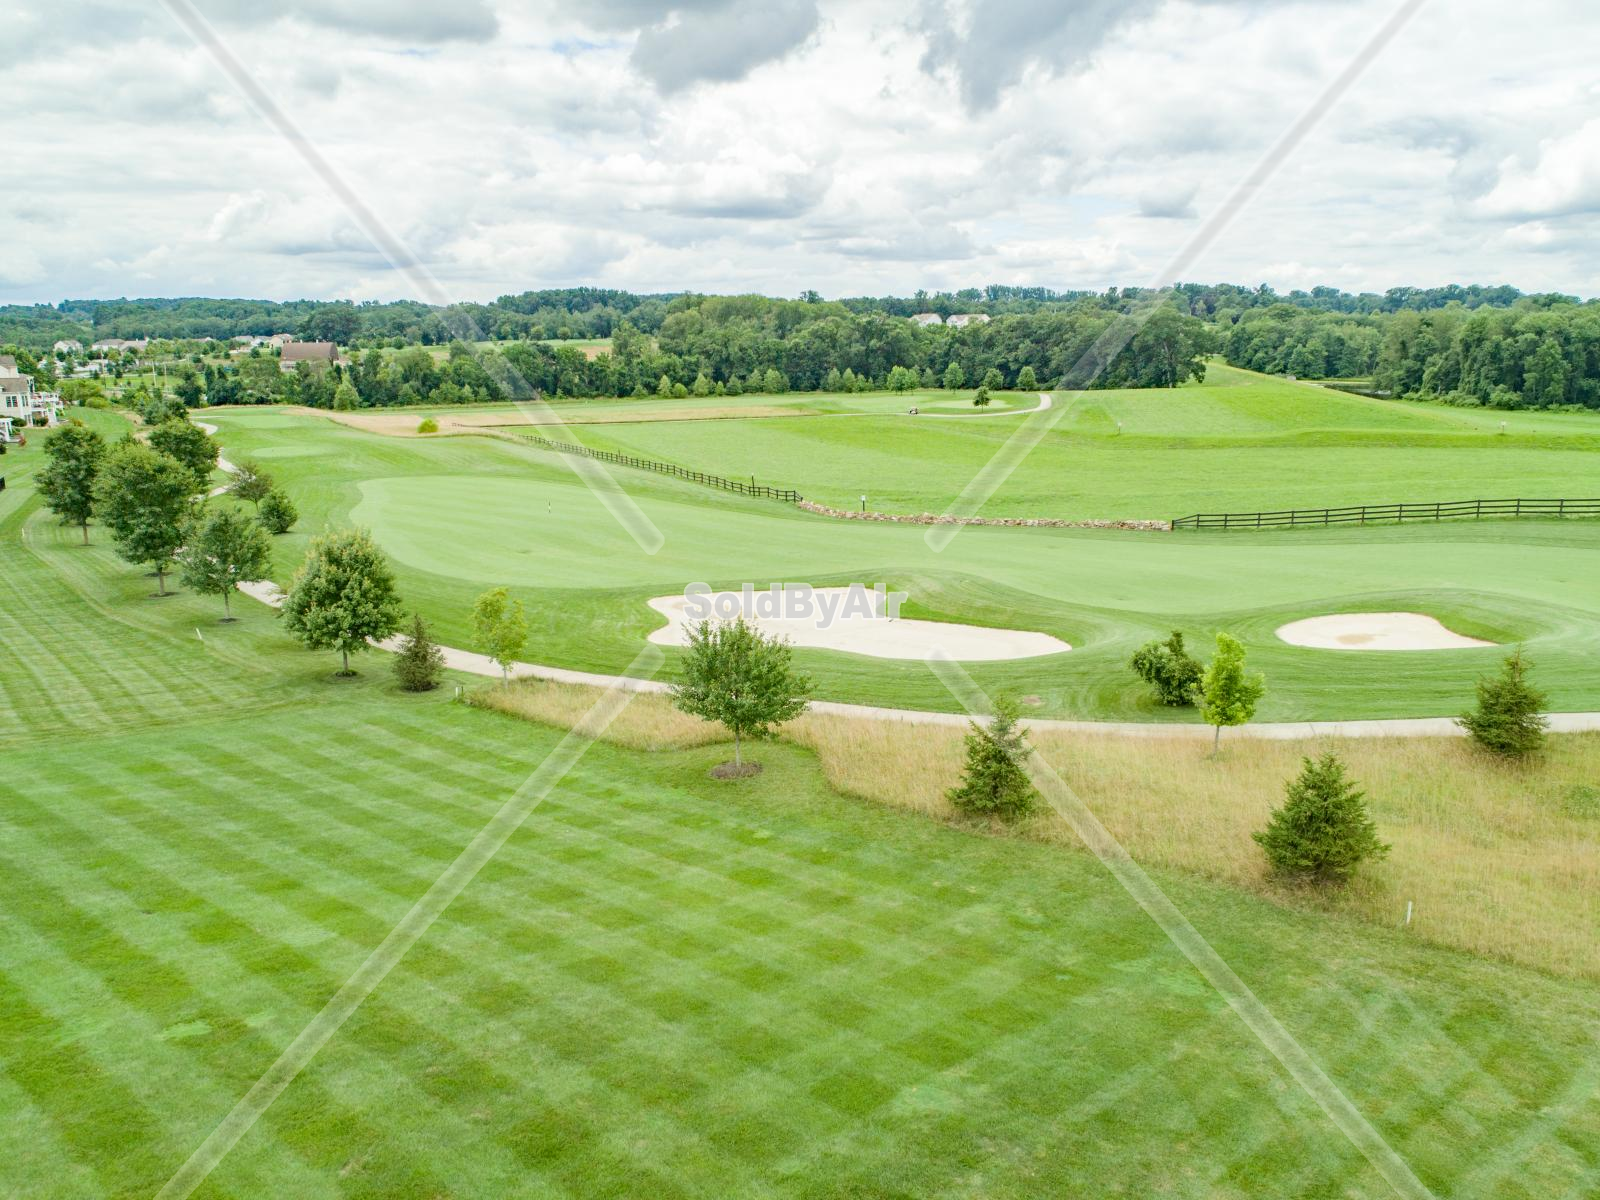 Drone Photo of Applecross Country Club in Downingtown Pennsylvania